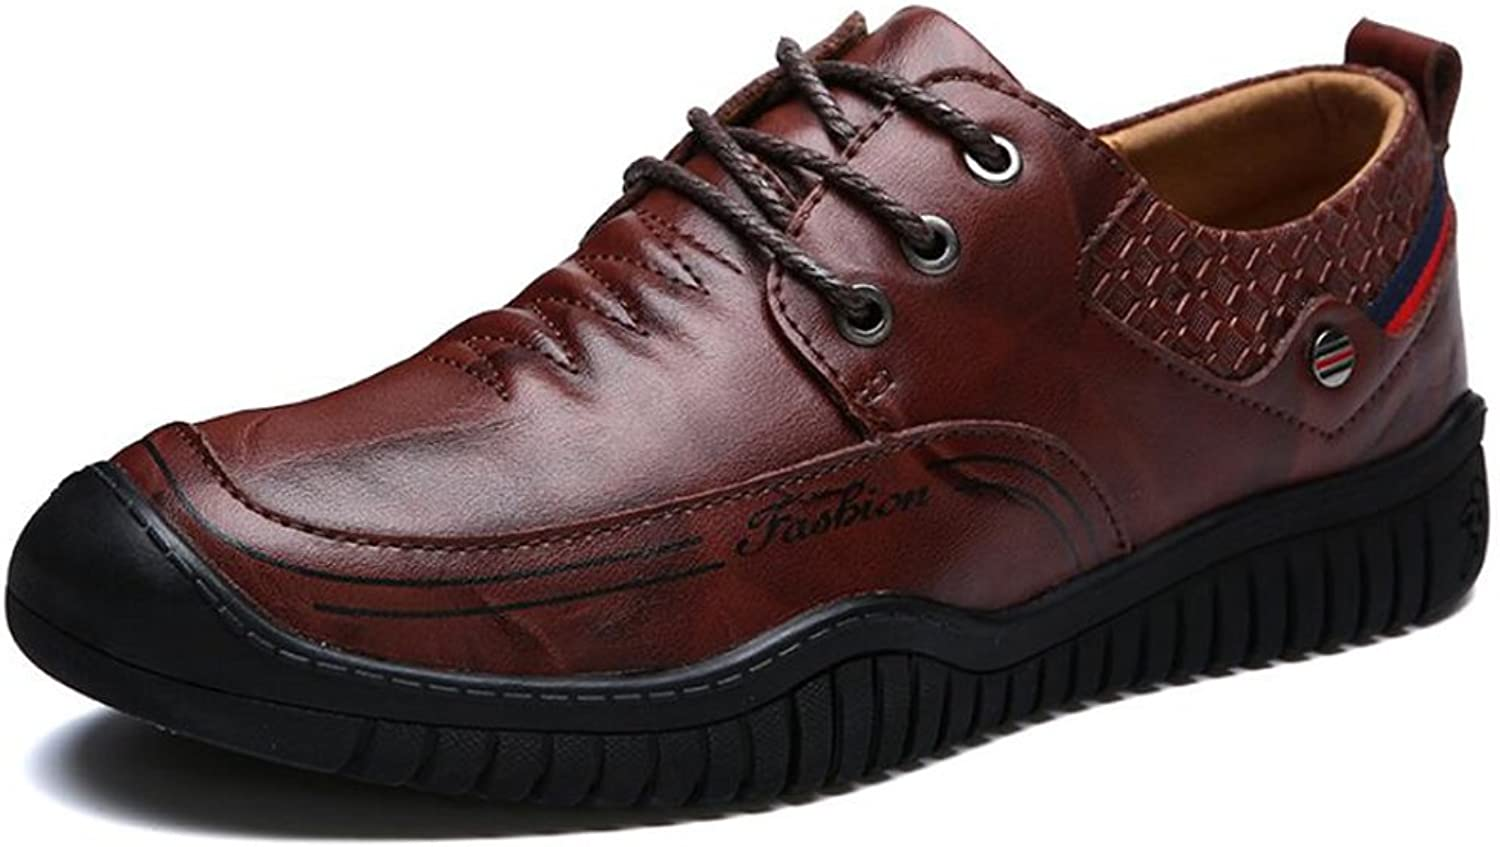 Men's shoes Leather Spring Summer Loafers Lace-up shoes Driving shoes Sneakers Comfort Walking shoes Athletic Breathable Casual Outdoor Formal Business Work (color   A, Size   40)